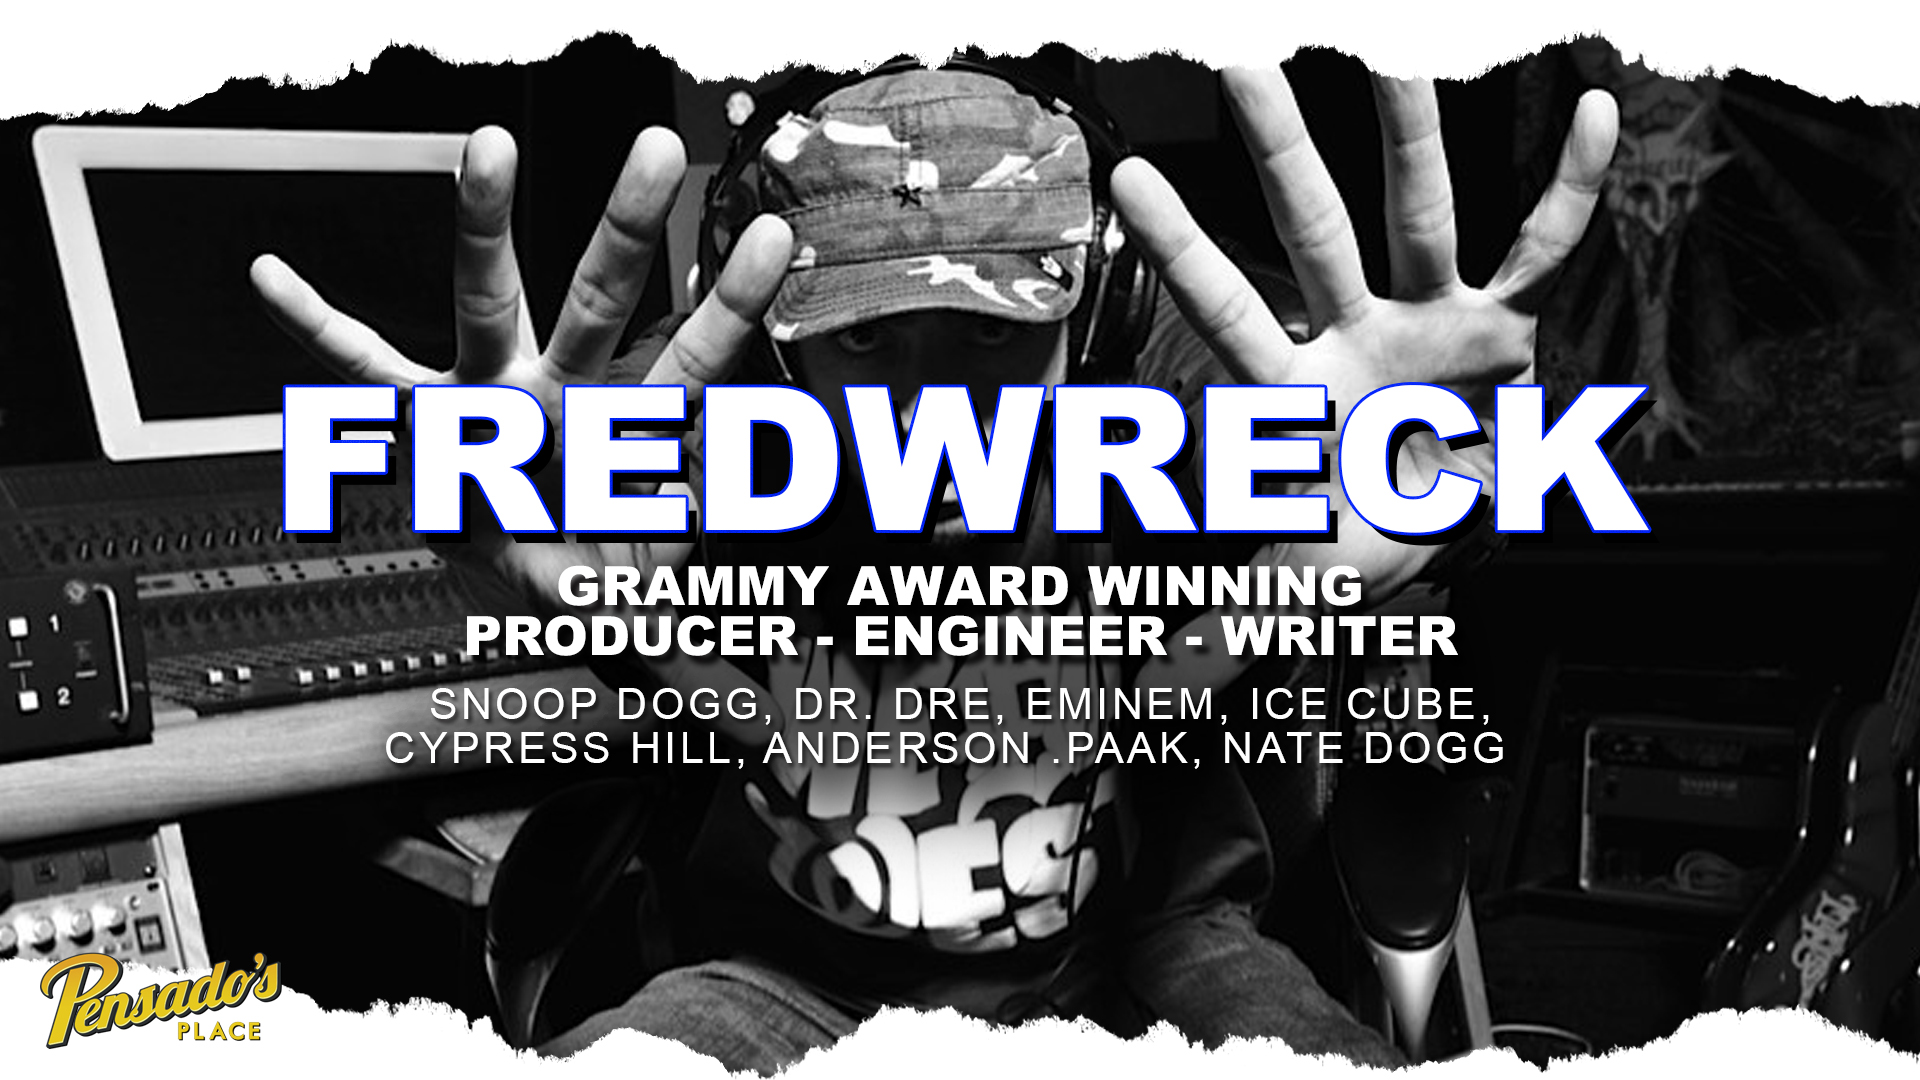 Grammy Award Winning Producer / Engineer / Writer, FredWreck